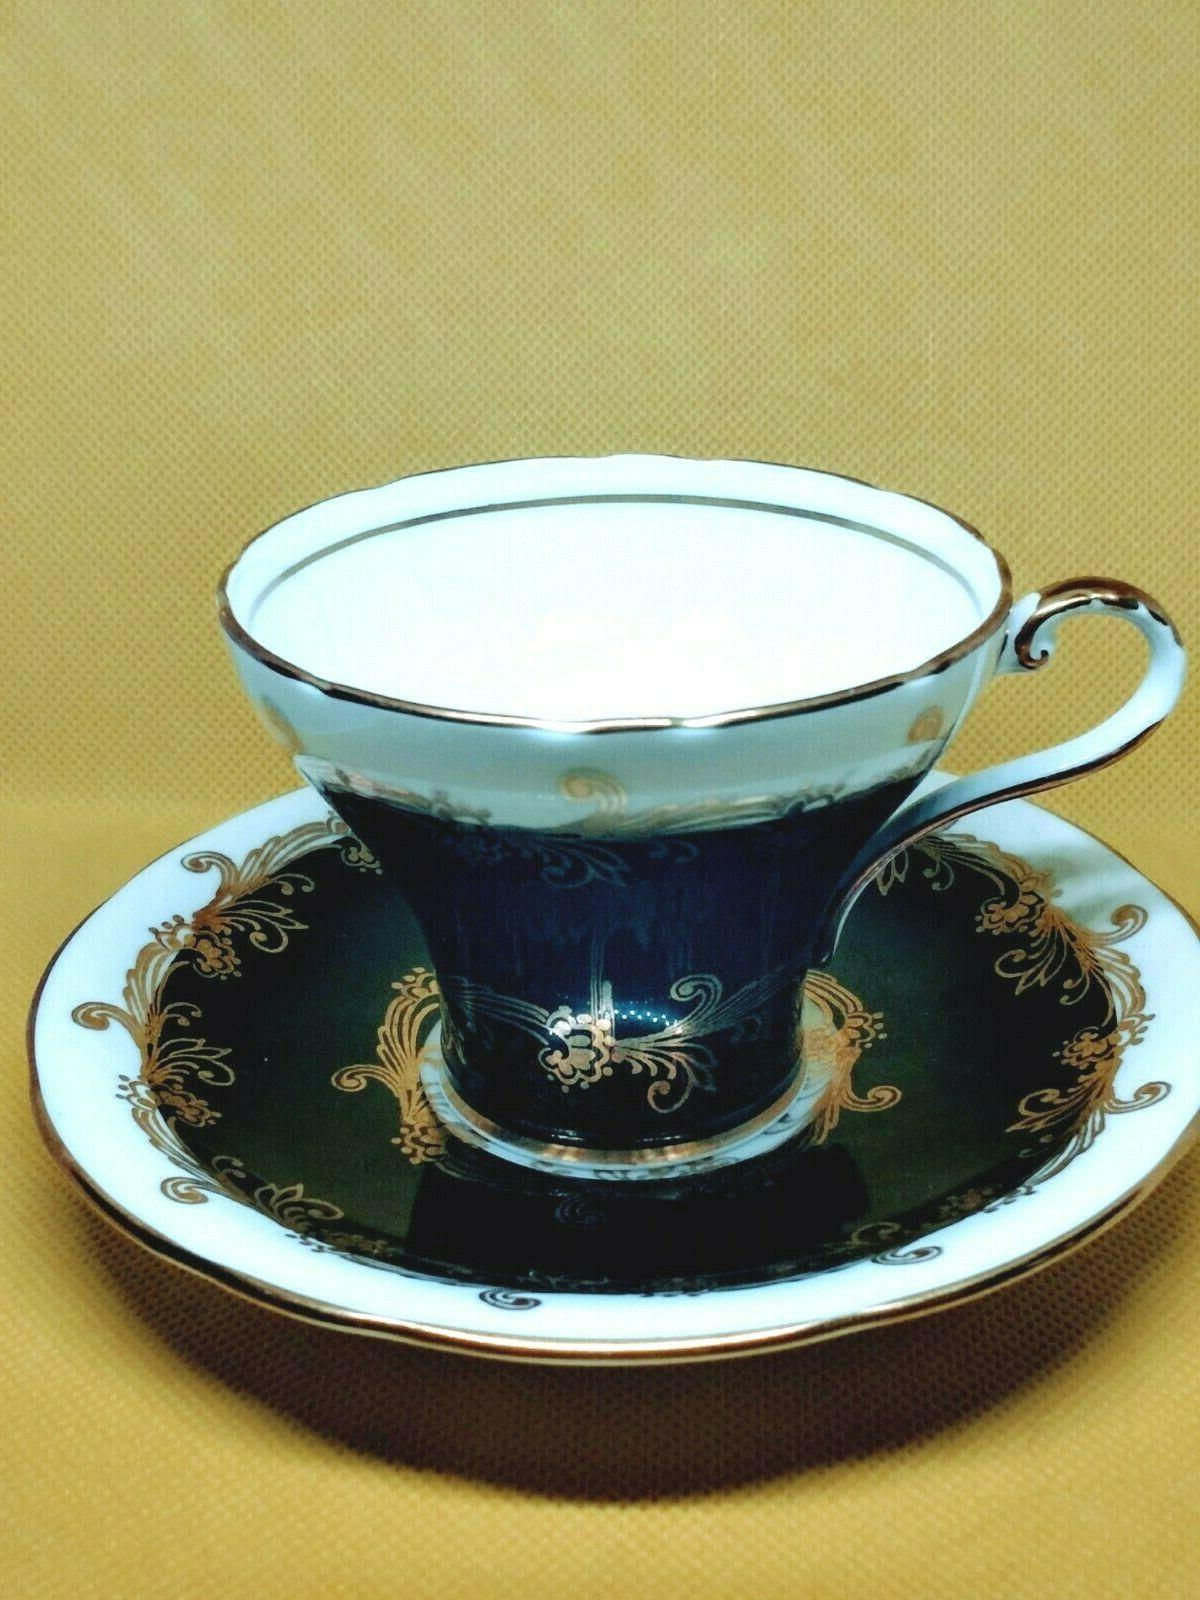 Aynsley Corset- Shaped Cup & 1934